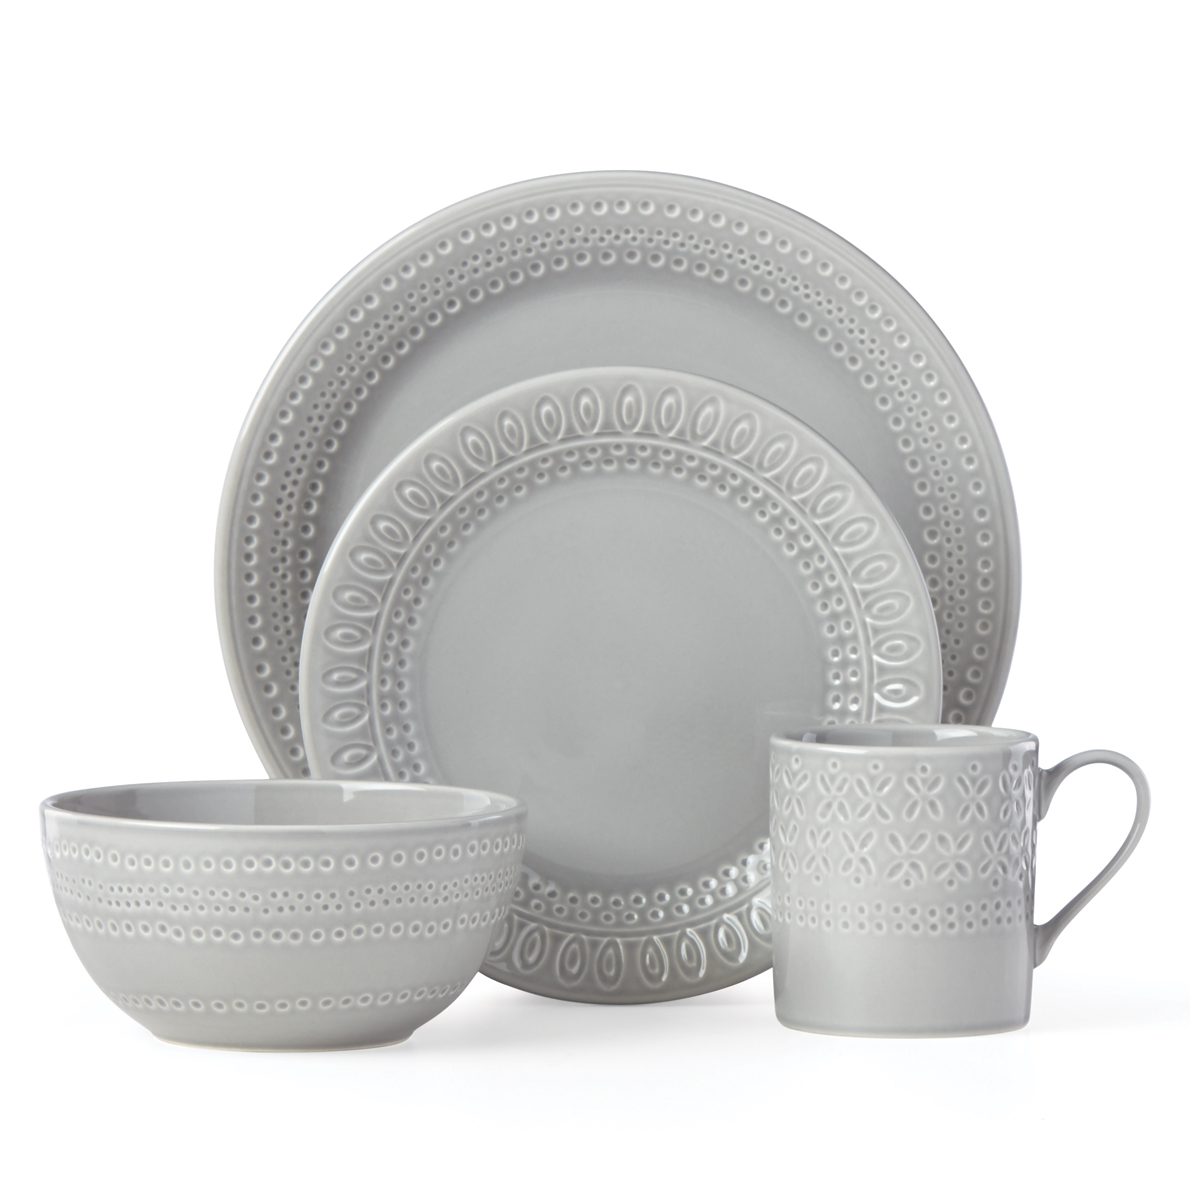 Kate Spade China by Lenox, Stoneware Willow Drive Grey 4pc Place Setting